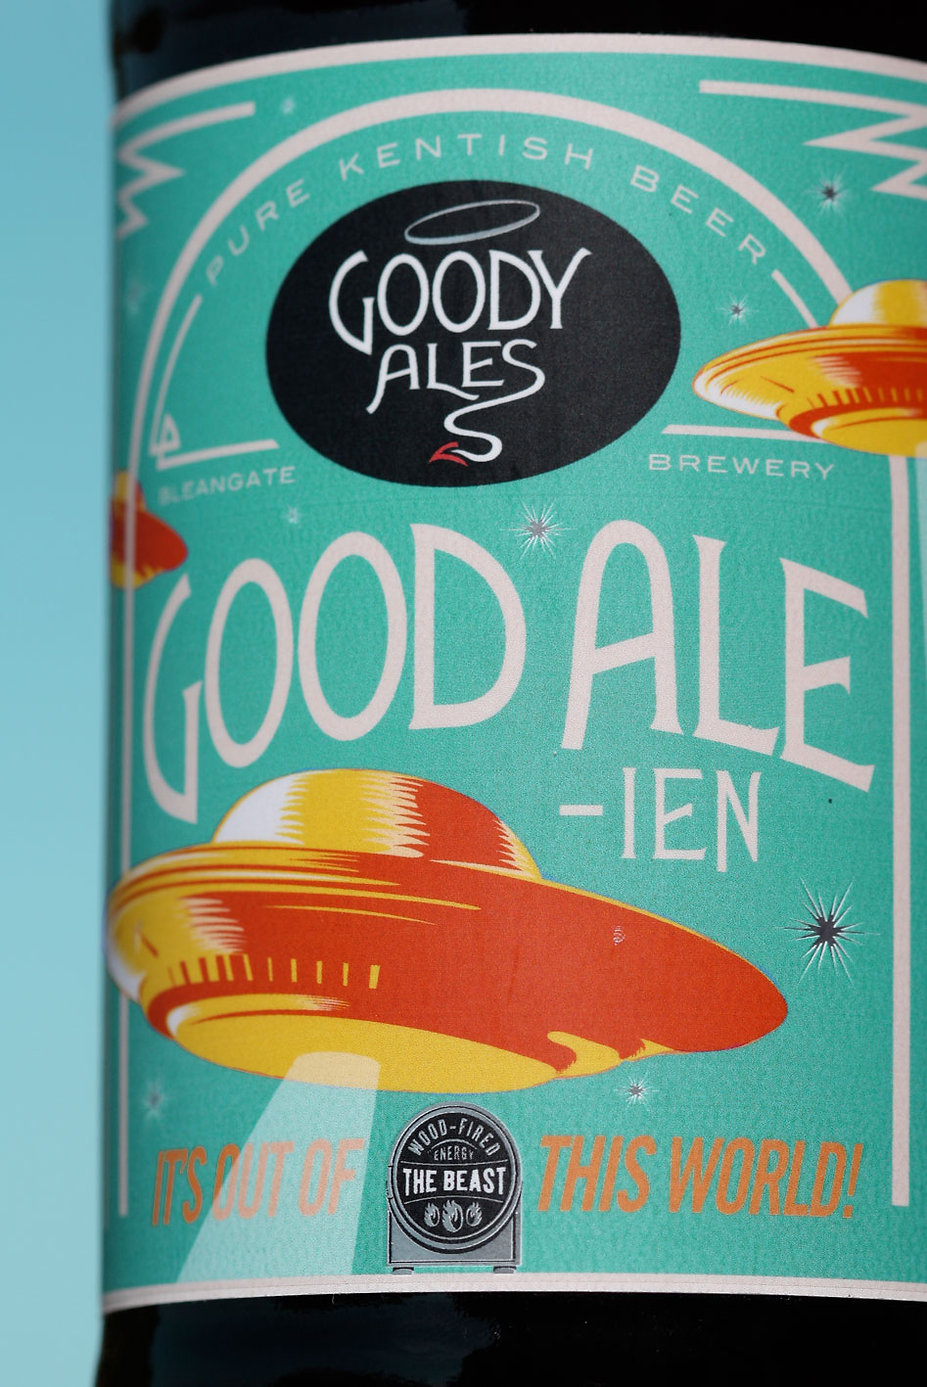 Sand Creative Goody Ales Good Ale-ien